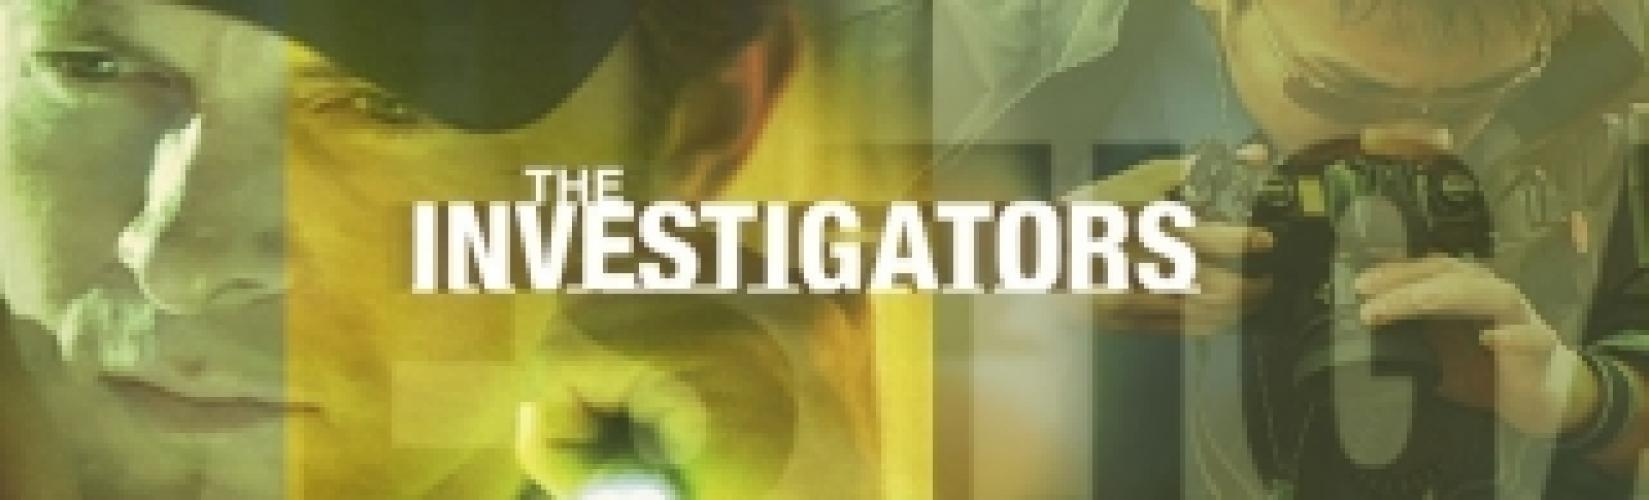 The Investigators (US) next episode air date poster